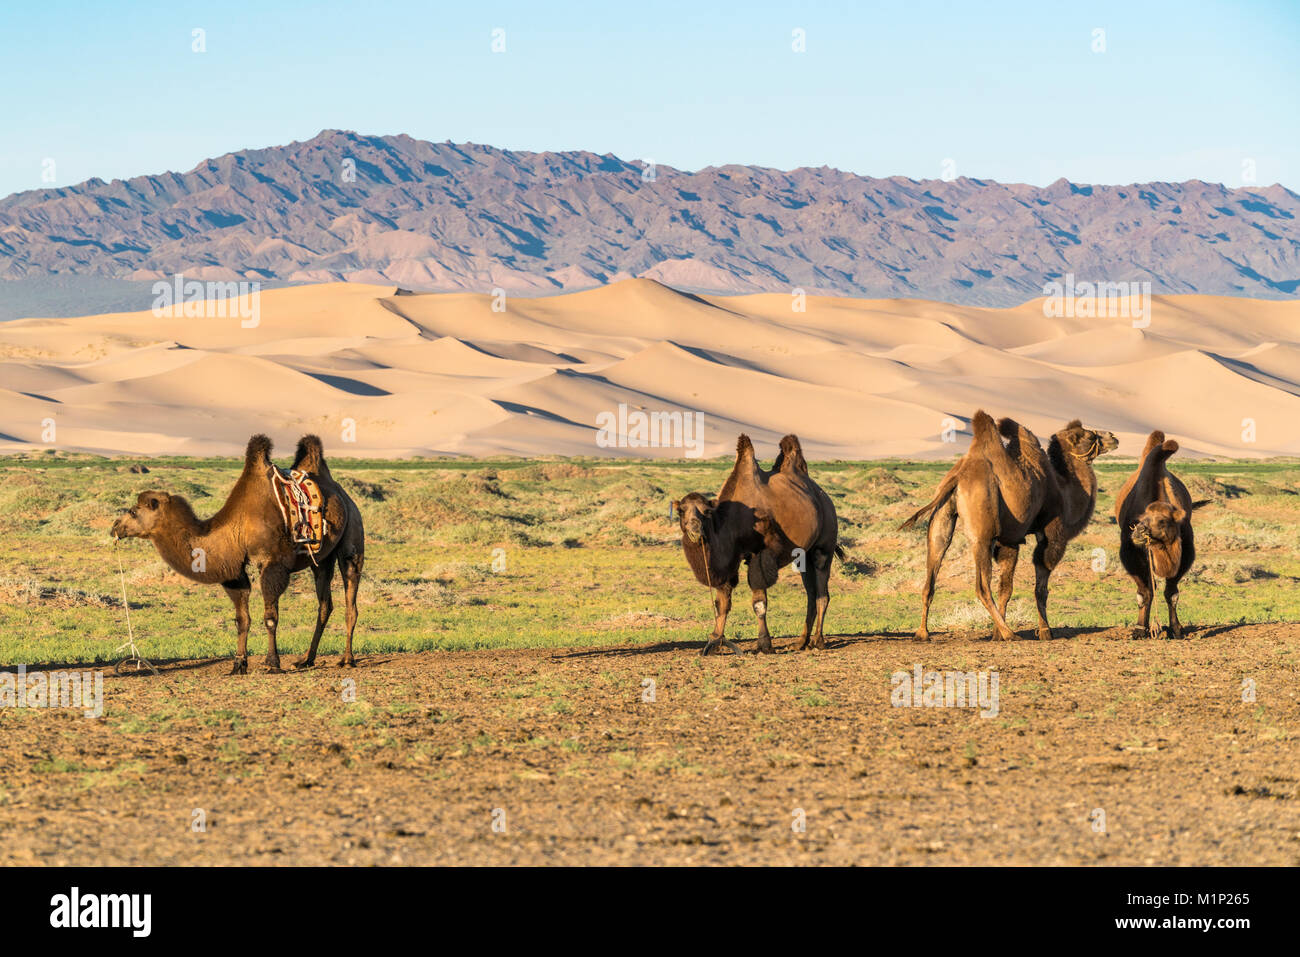 Camels and sand dunes of Gobi desert in the background, Sevrei district, South Gobi province, Mongolia, Central - Stock Image